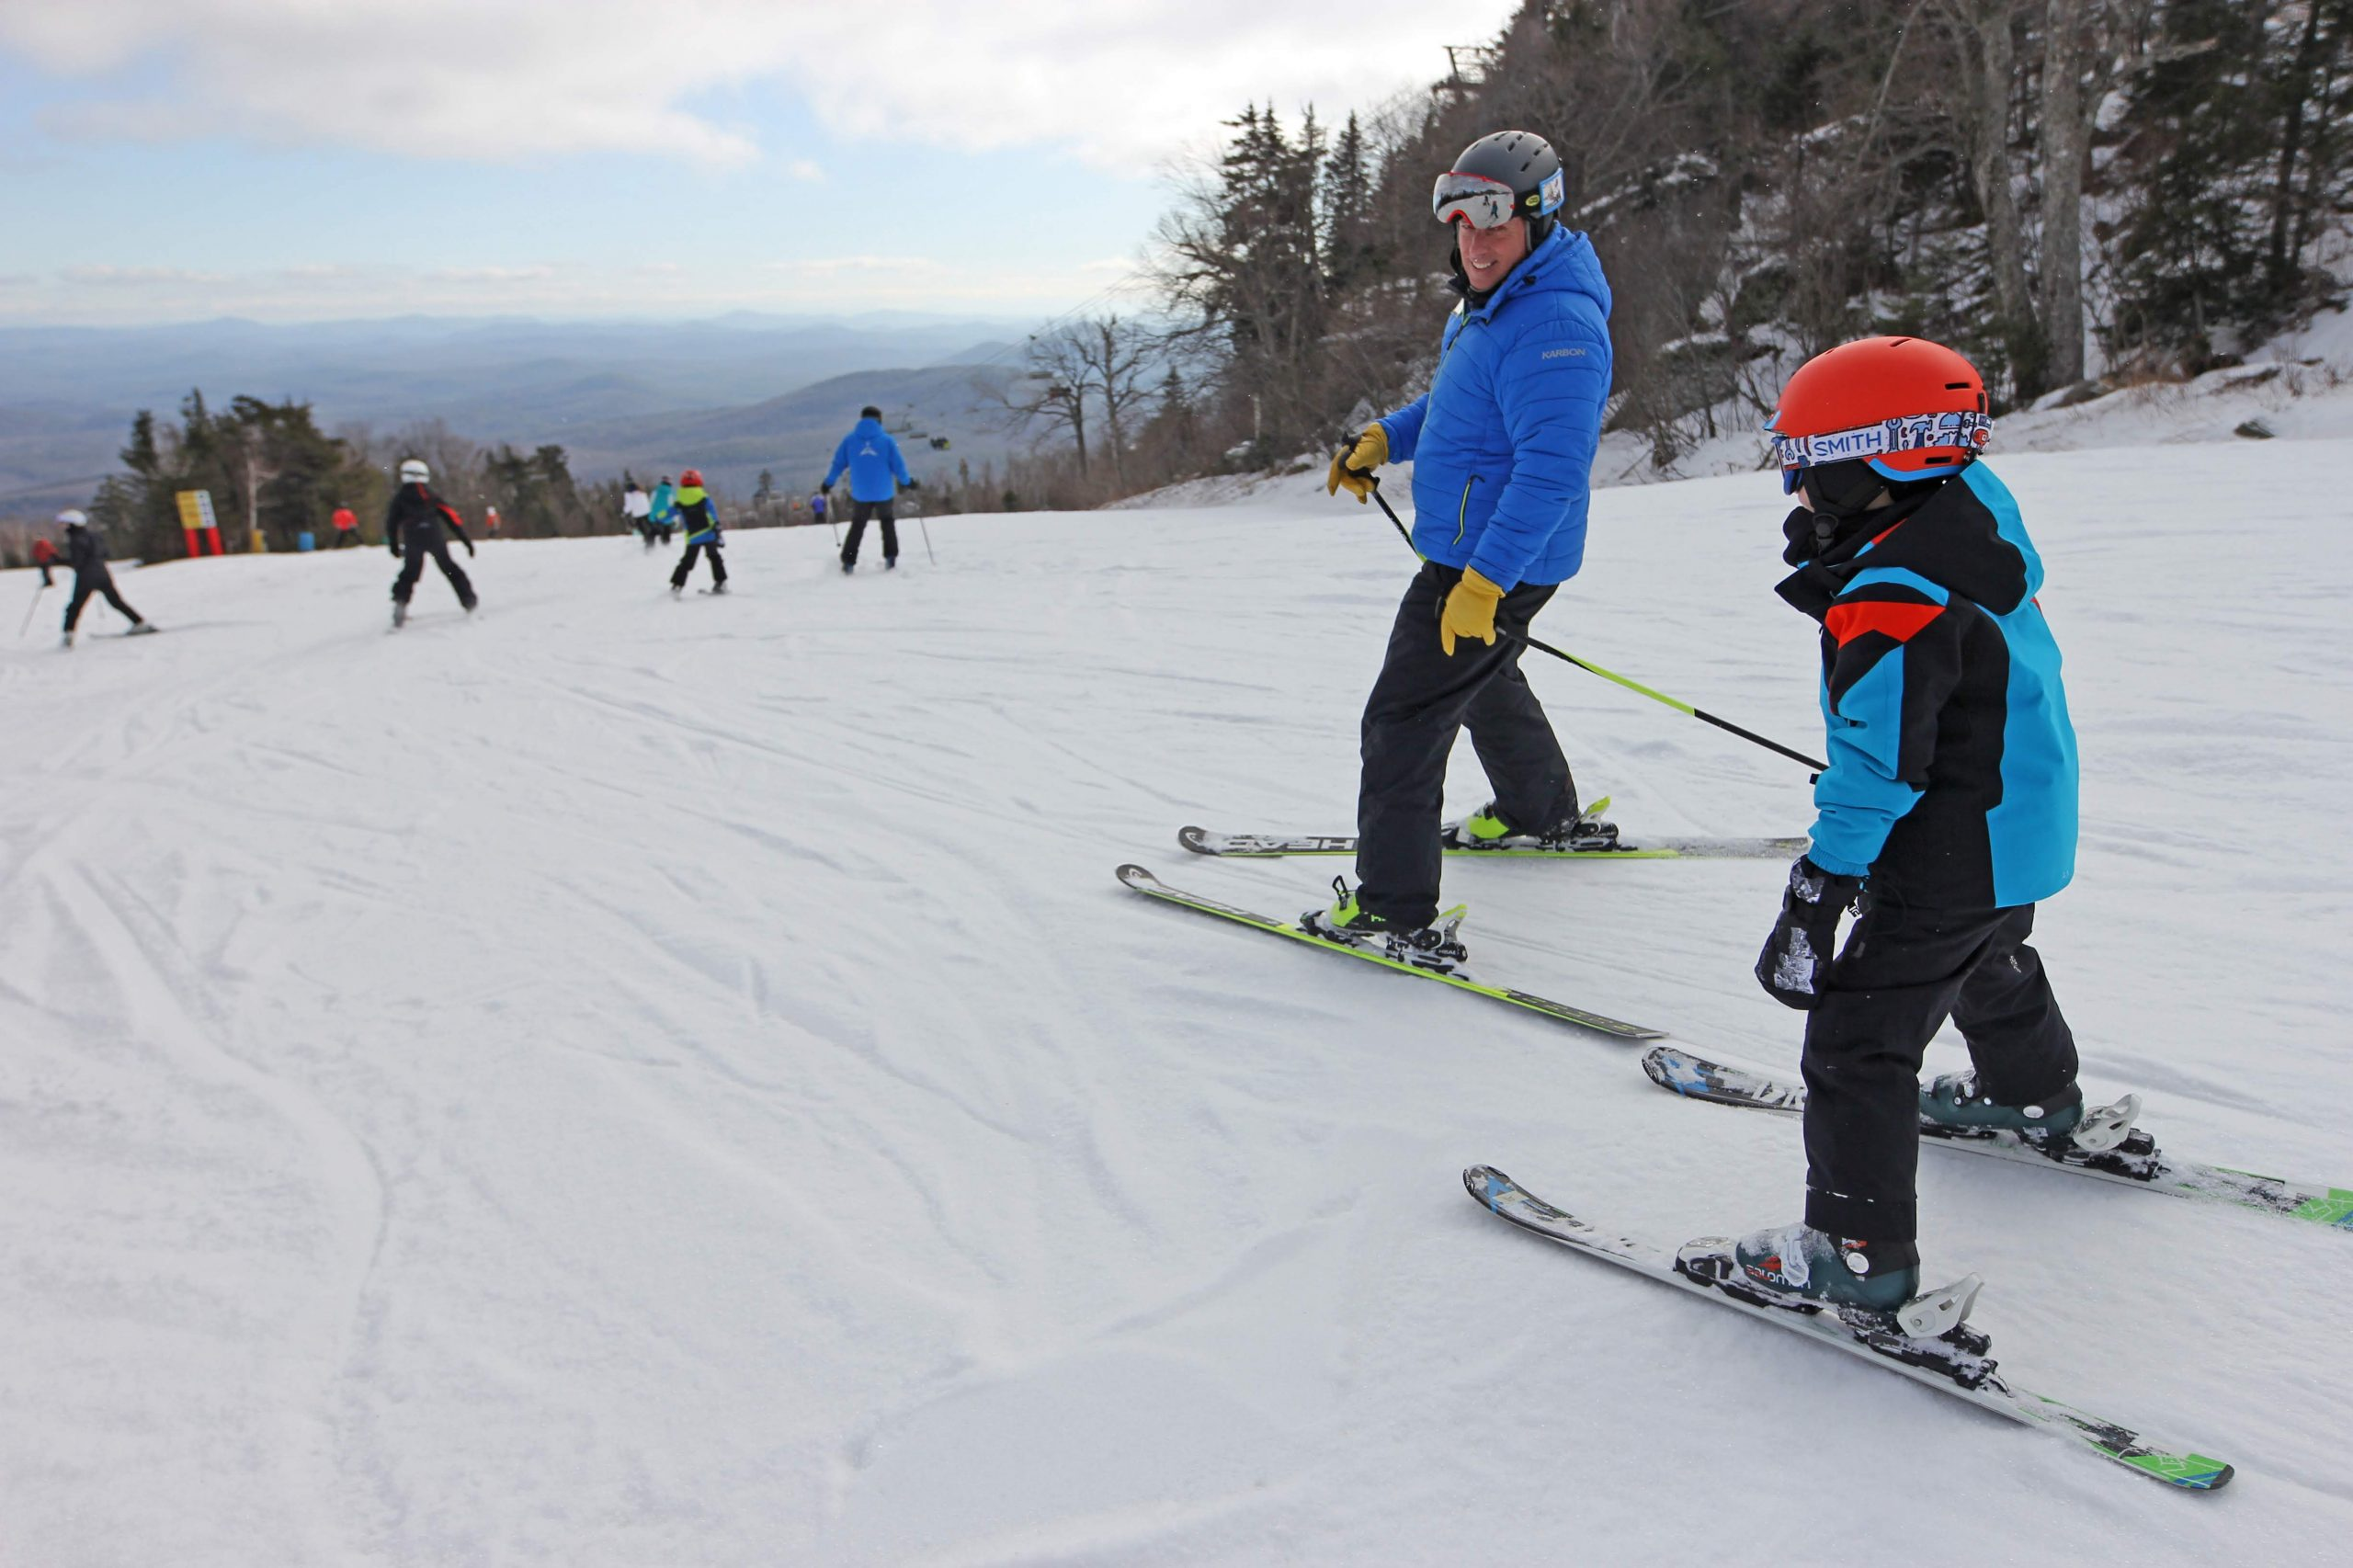 Kid in a lesson skiing